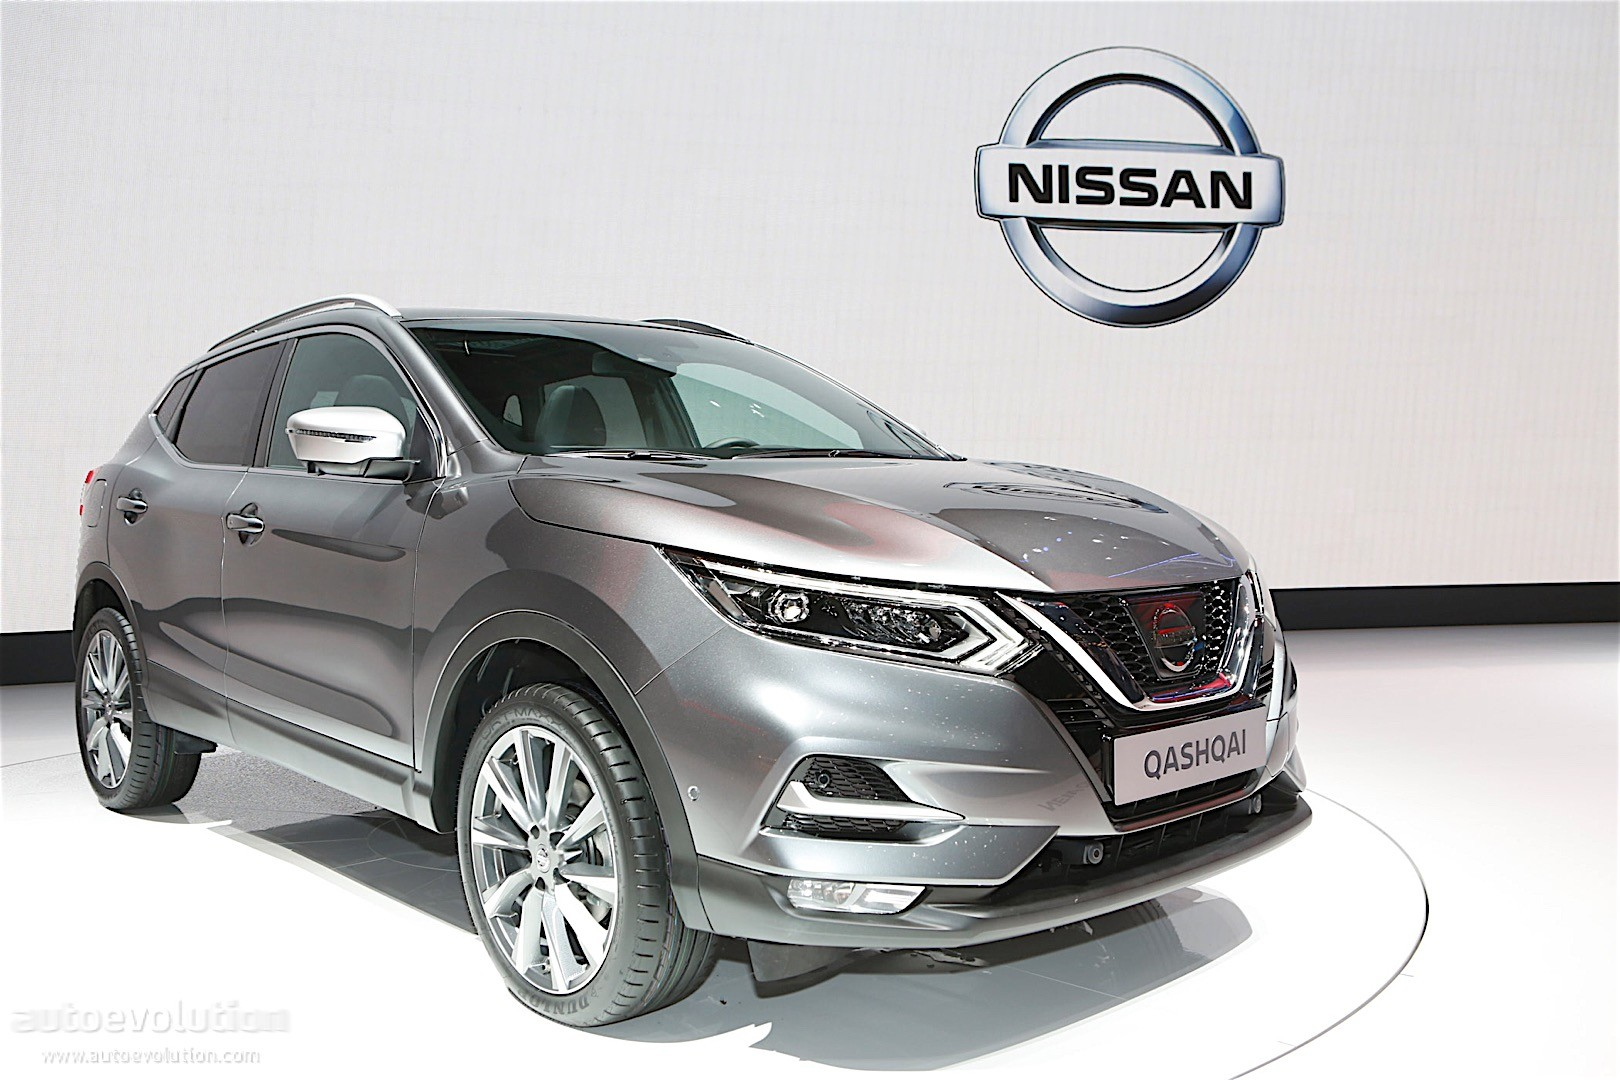 nissan qashqai facelift bows in geneva for its tenth. Black Bedroom Furniture Sets. Home Design Ideas